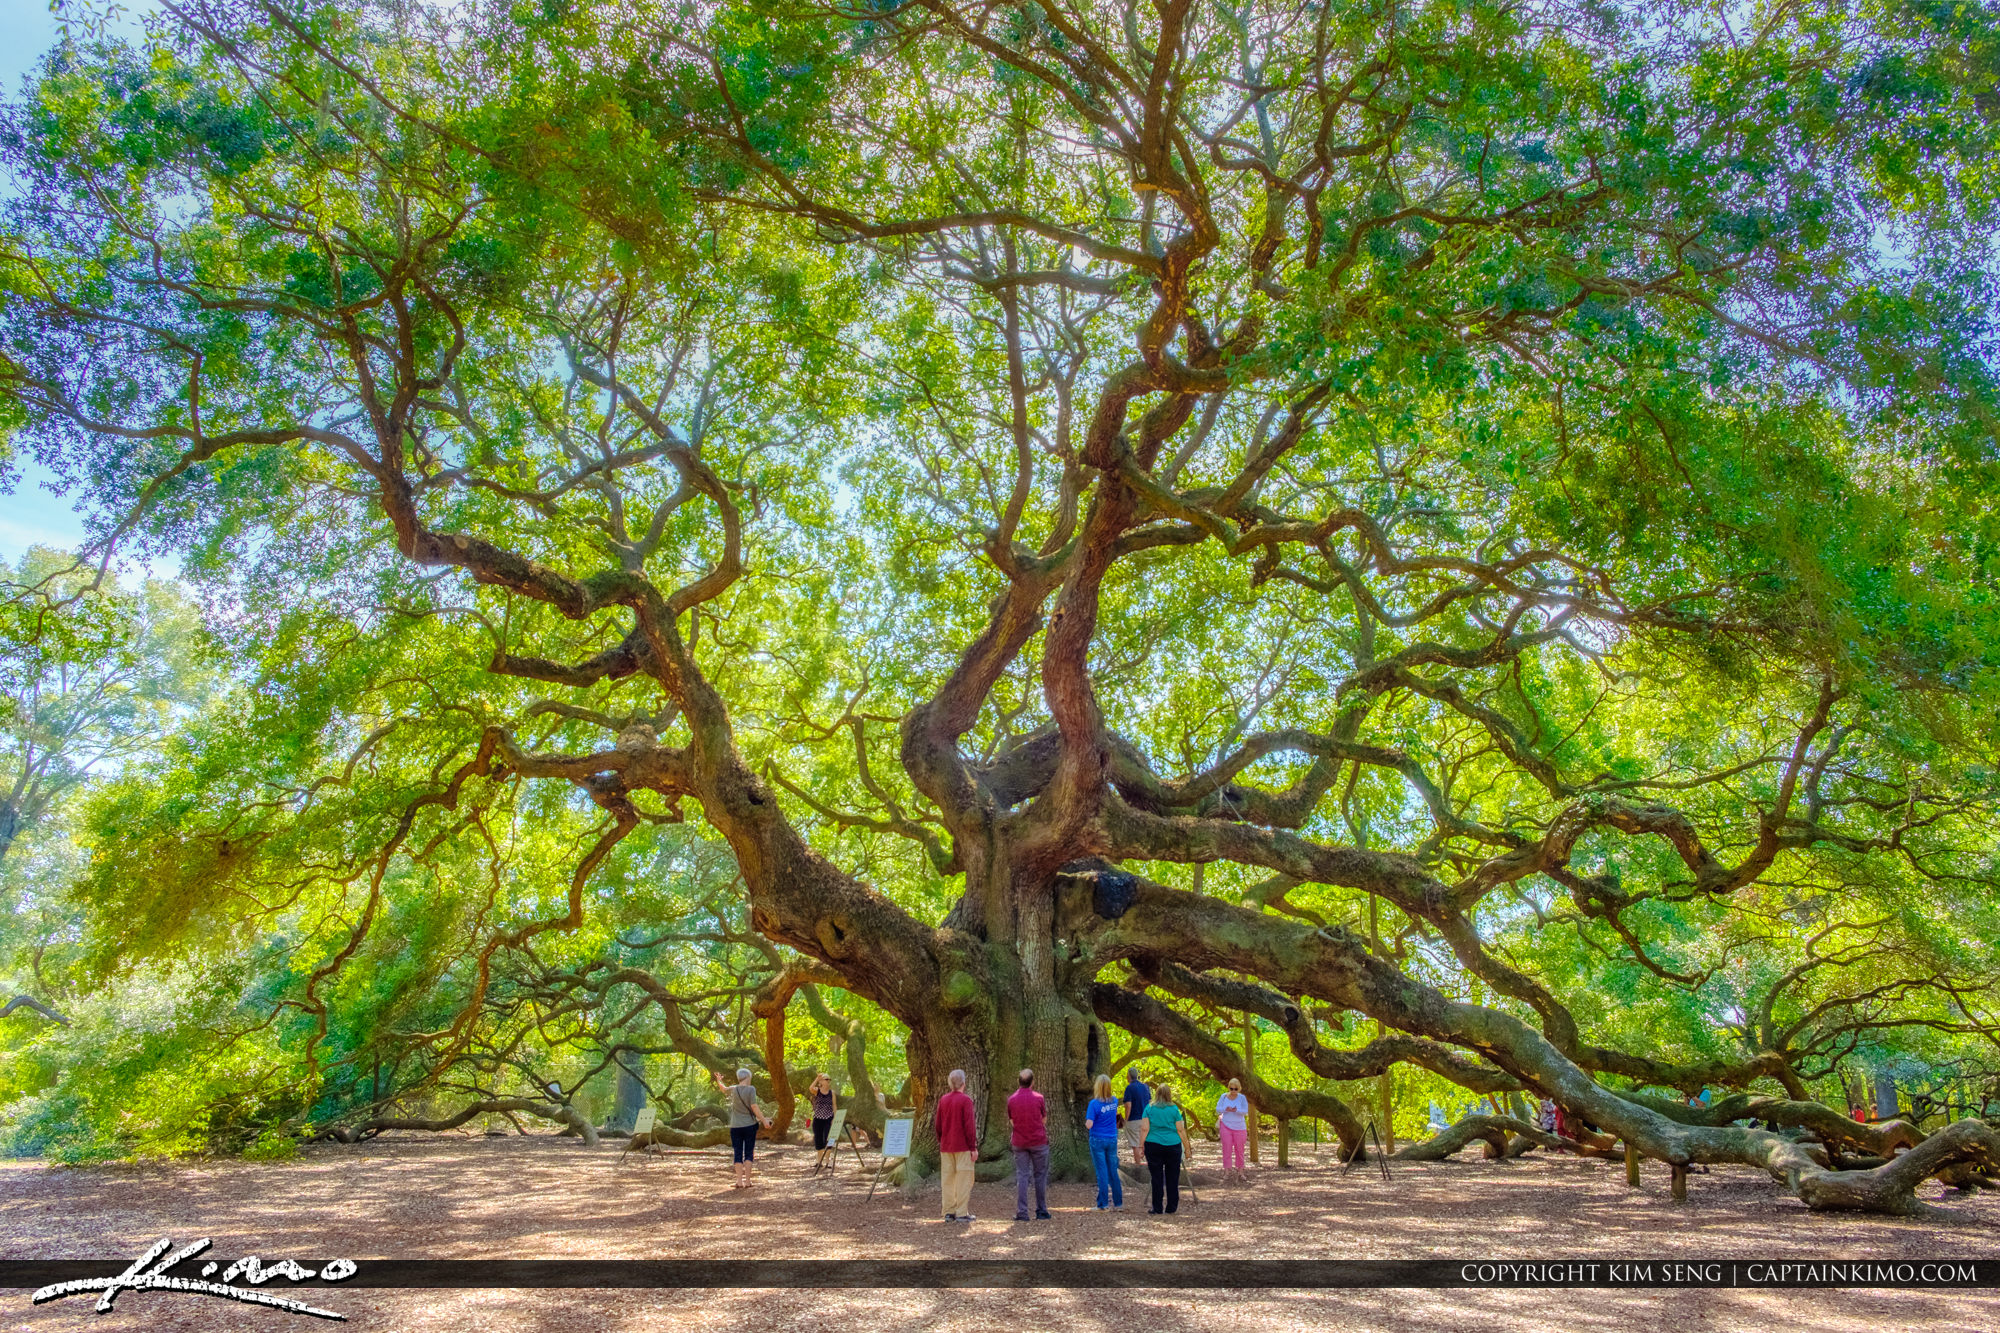 South Carolina Angel Oak Tree People at Trunk